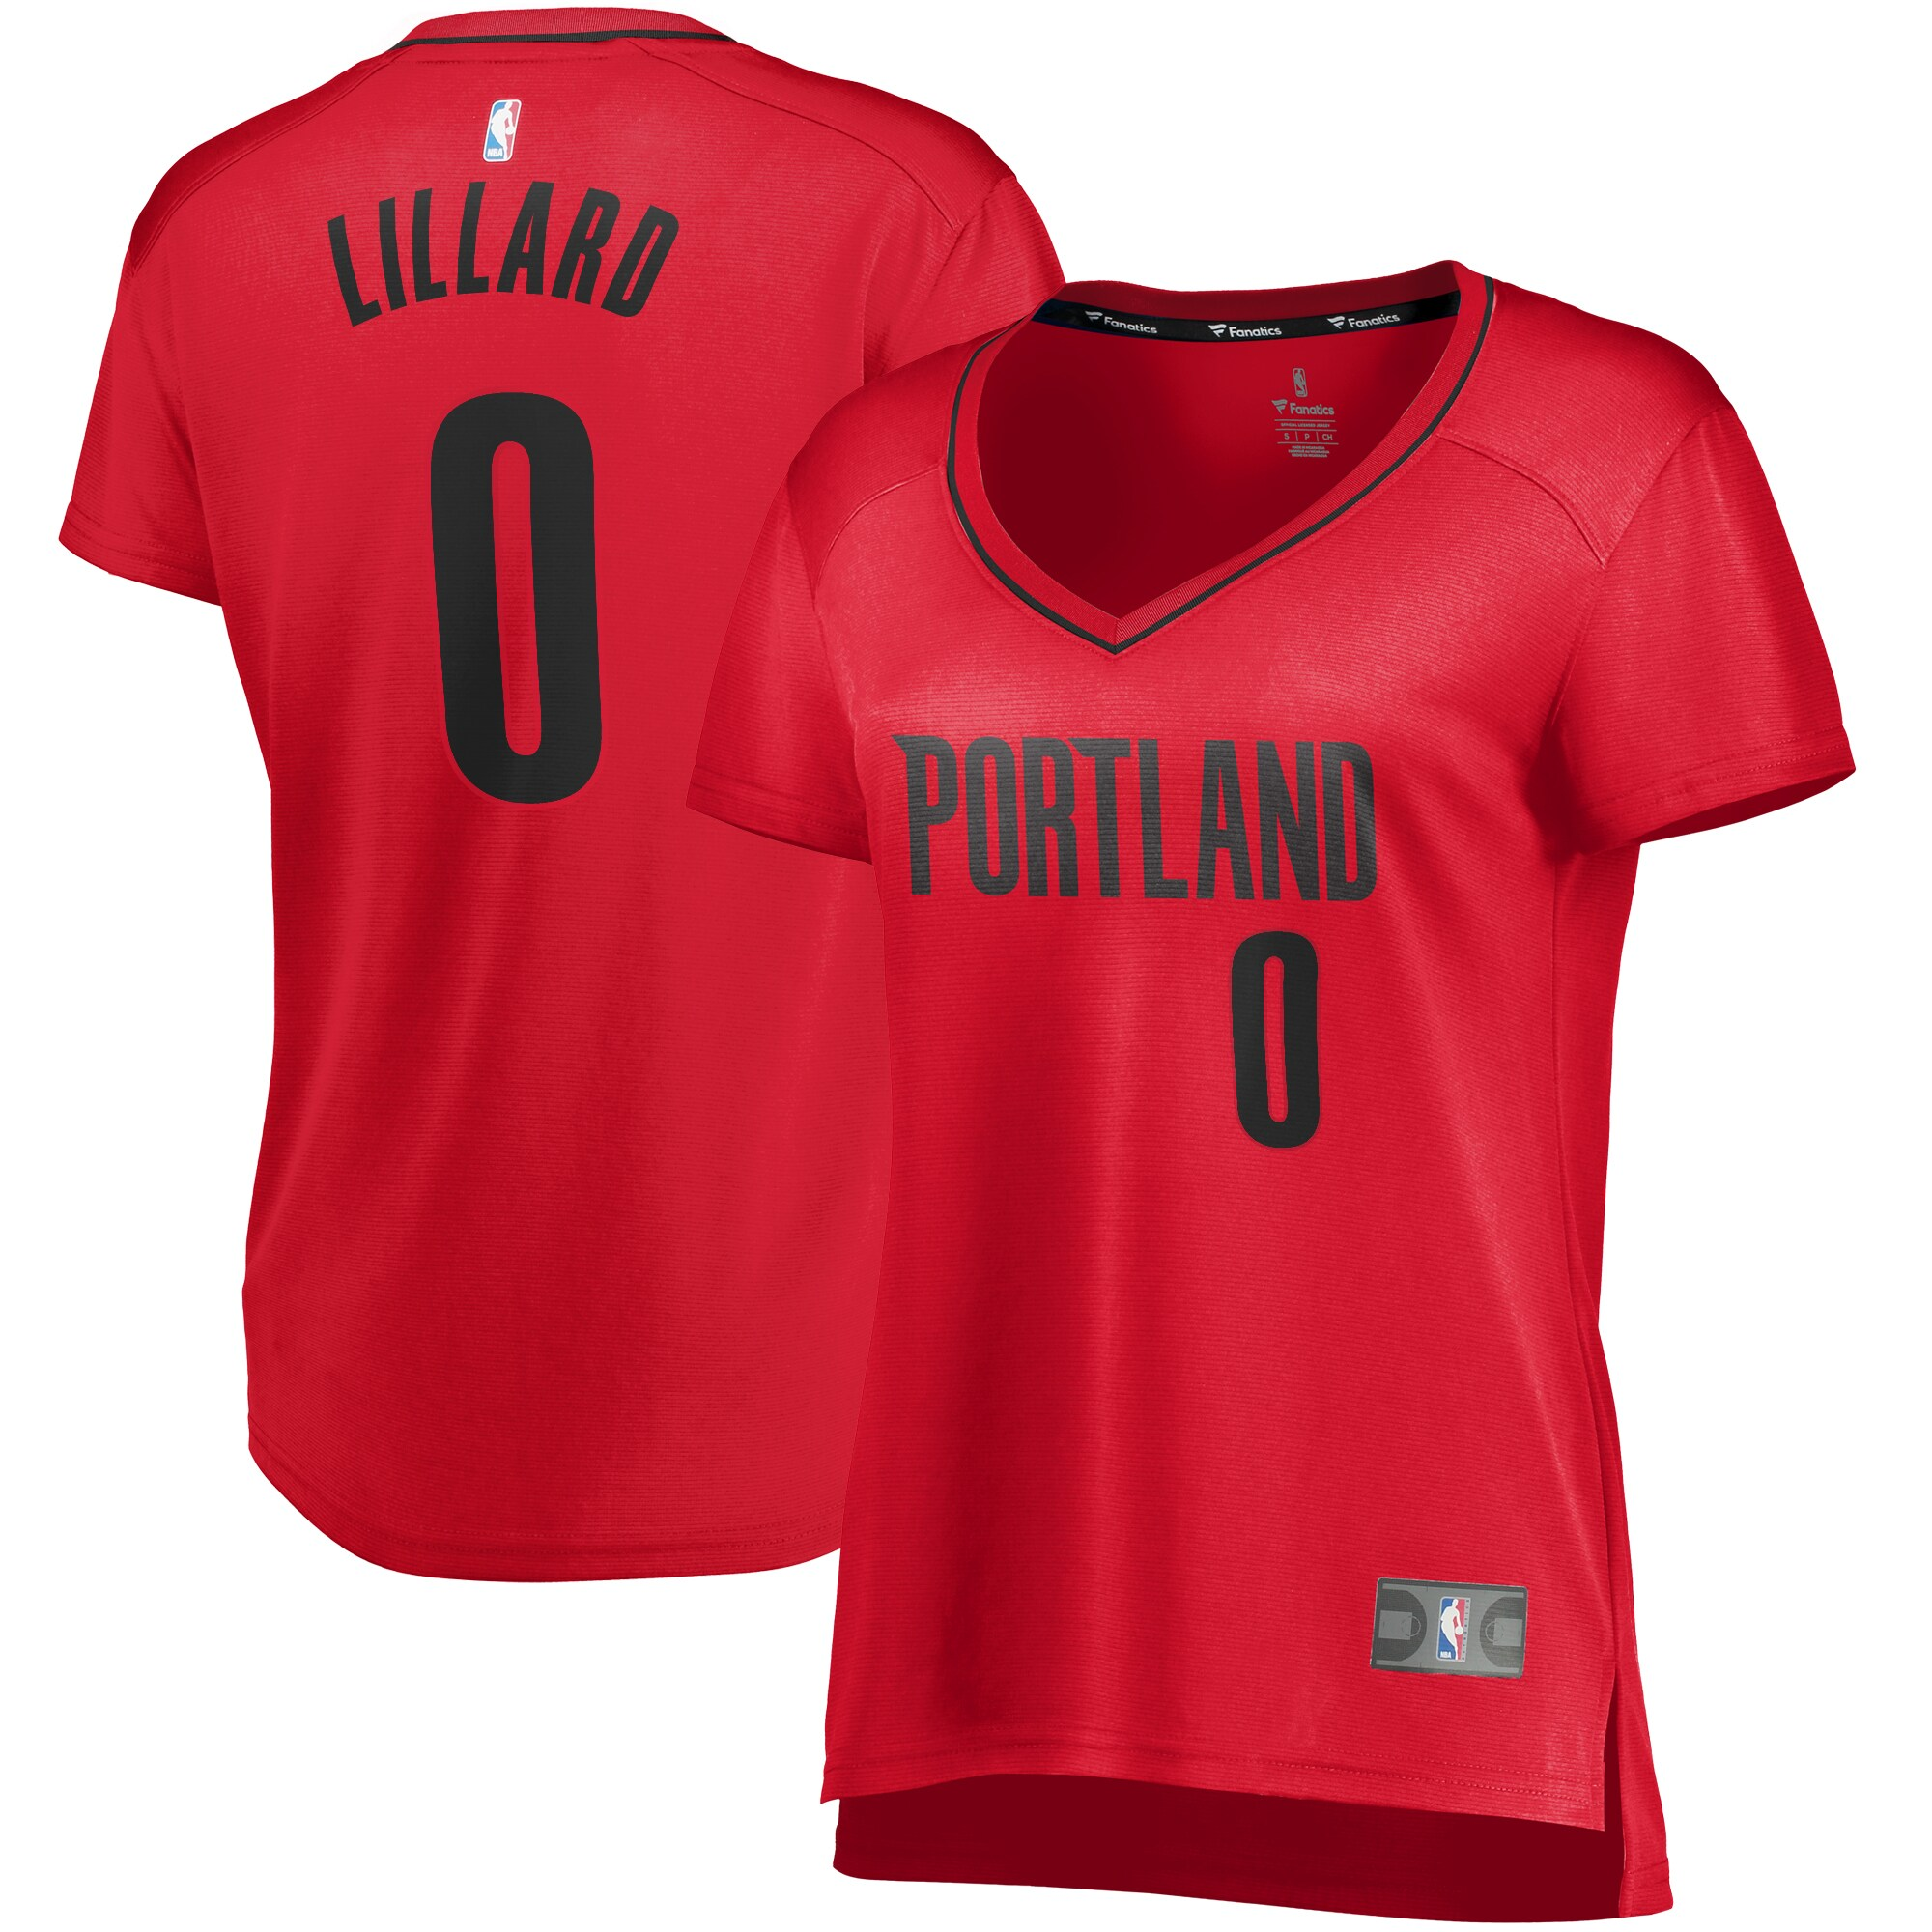 Damian Lillard Portland Trail Blazers Fanatics Branded Women's Fast Break Player Jersey - Statement Edition - Red